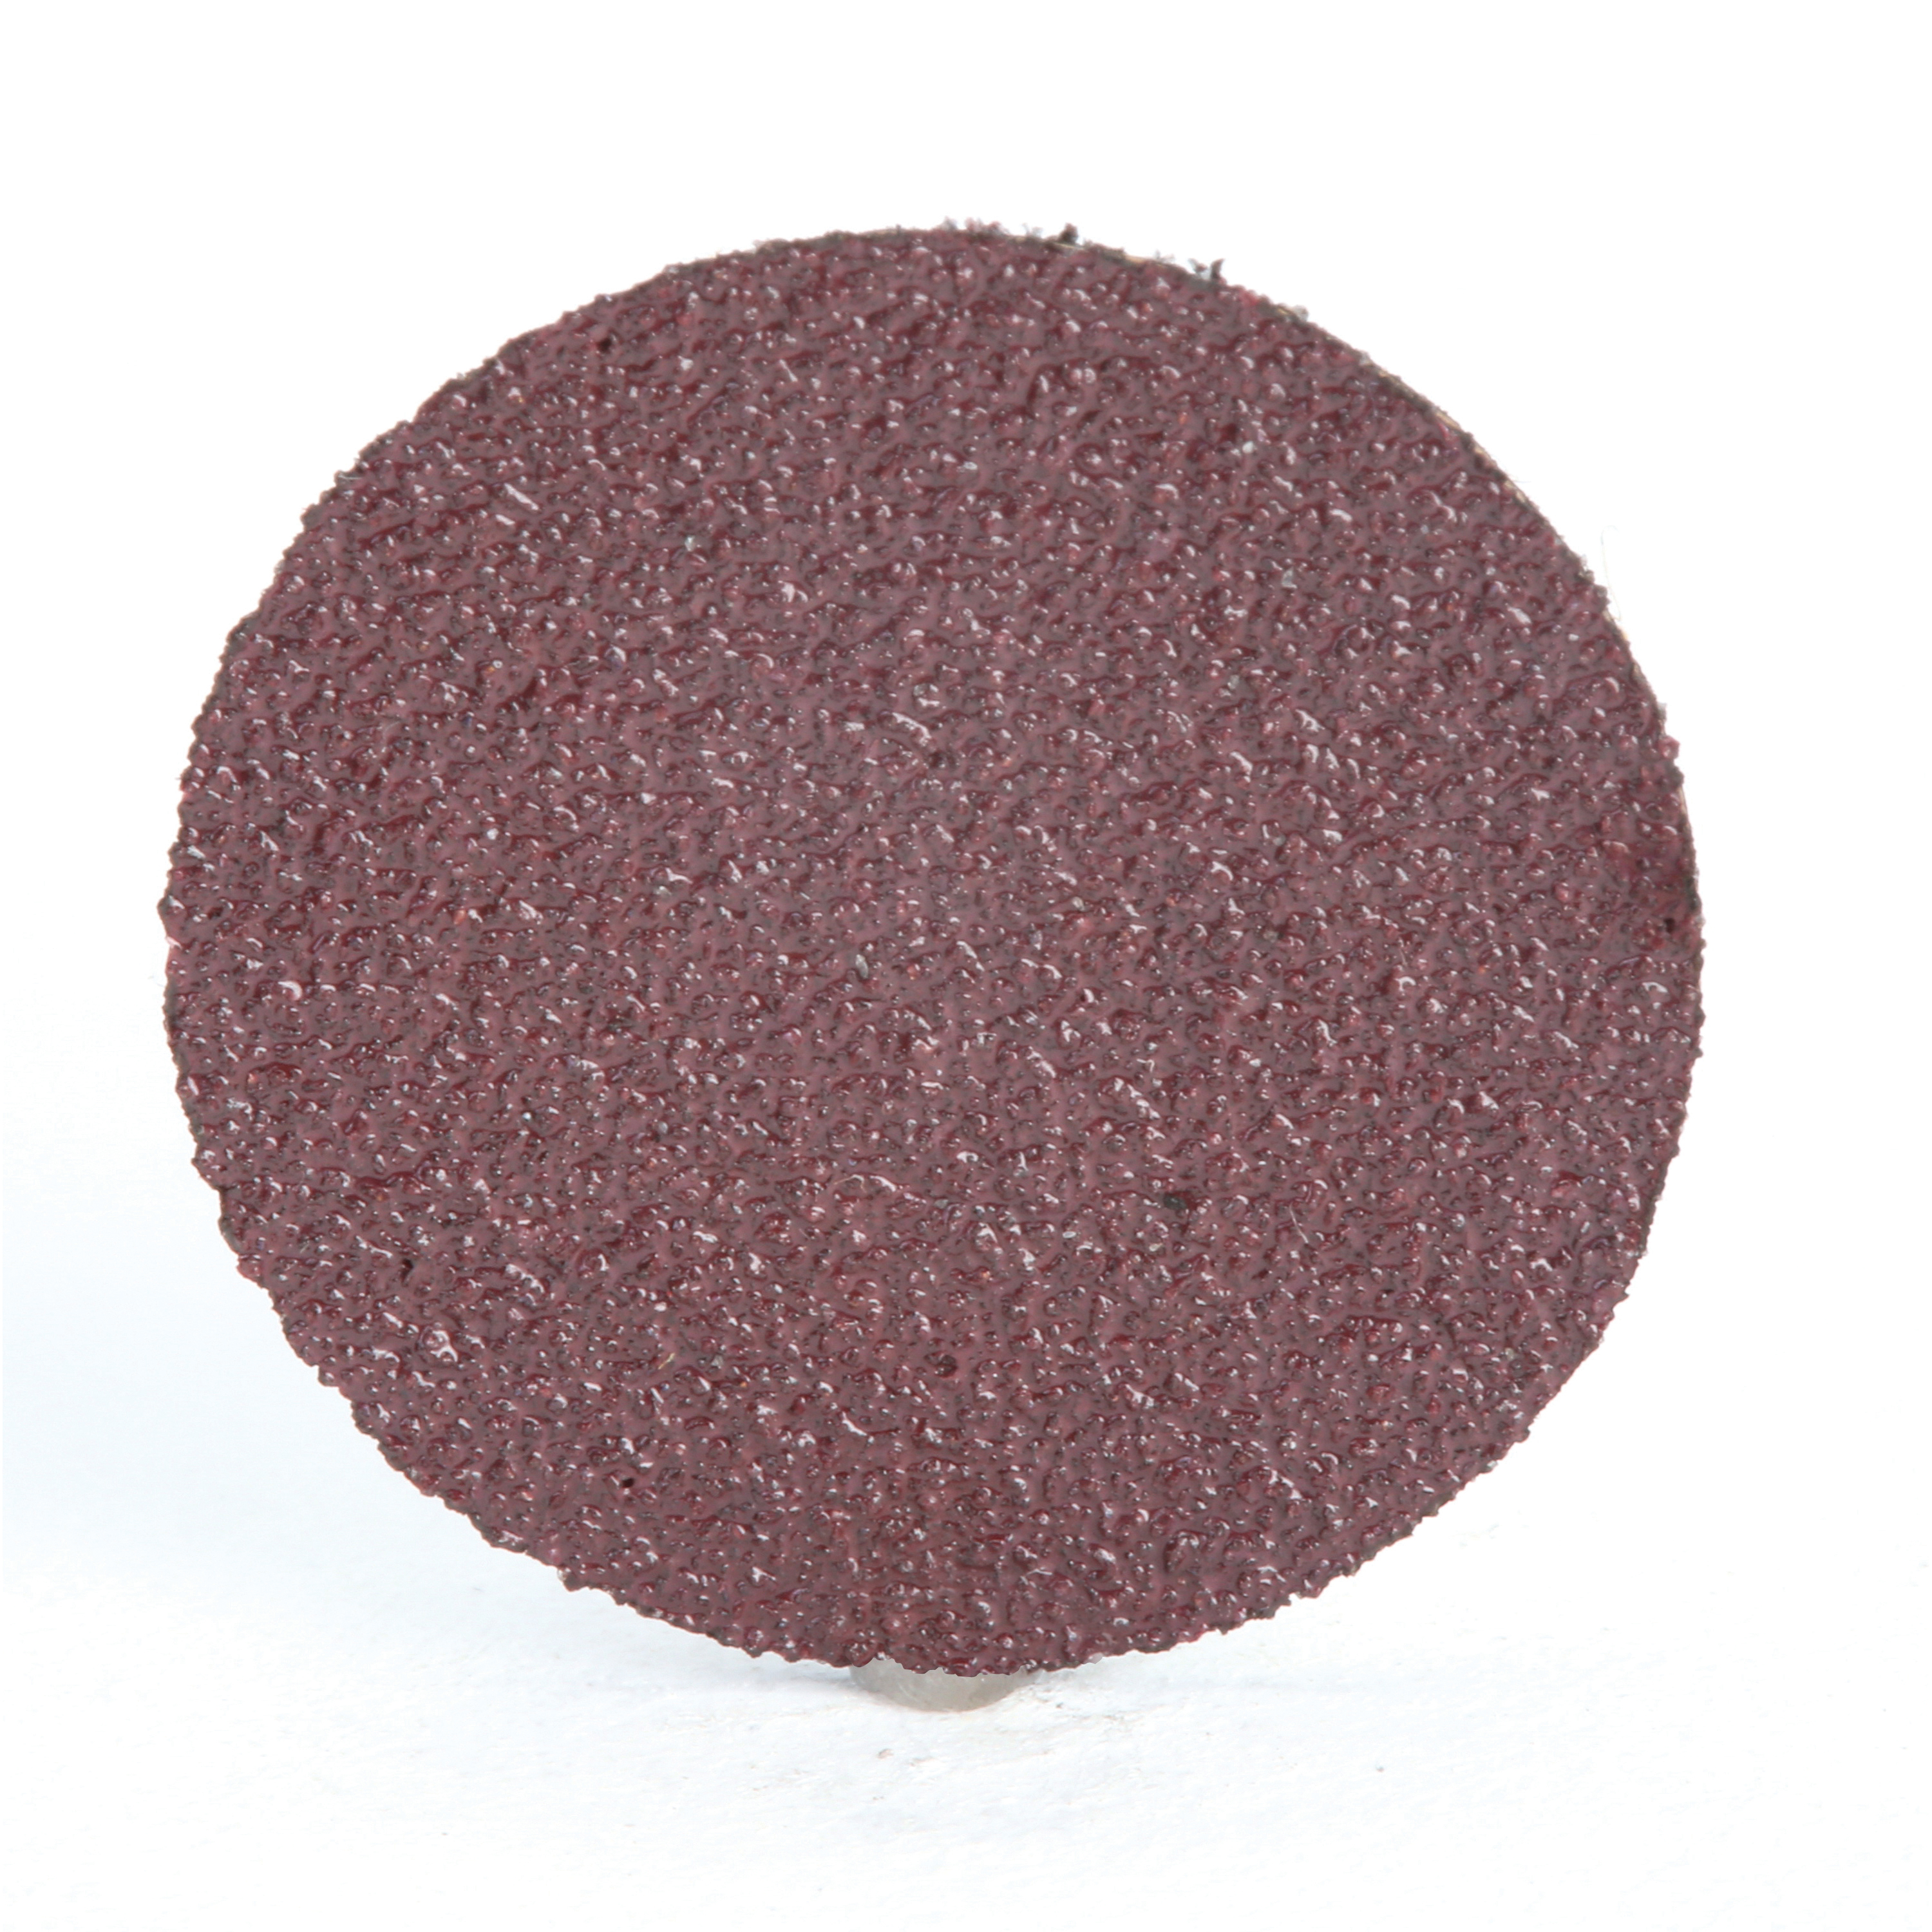 3M™ 051144-20940 Heavy Duty PSA Close Coated Abrasive Disc, 3/4 in Dia, P120 Grit, Fine Grade, Aluminum Oxide Abrasive, Cloth Backing